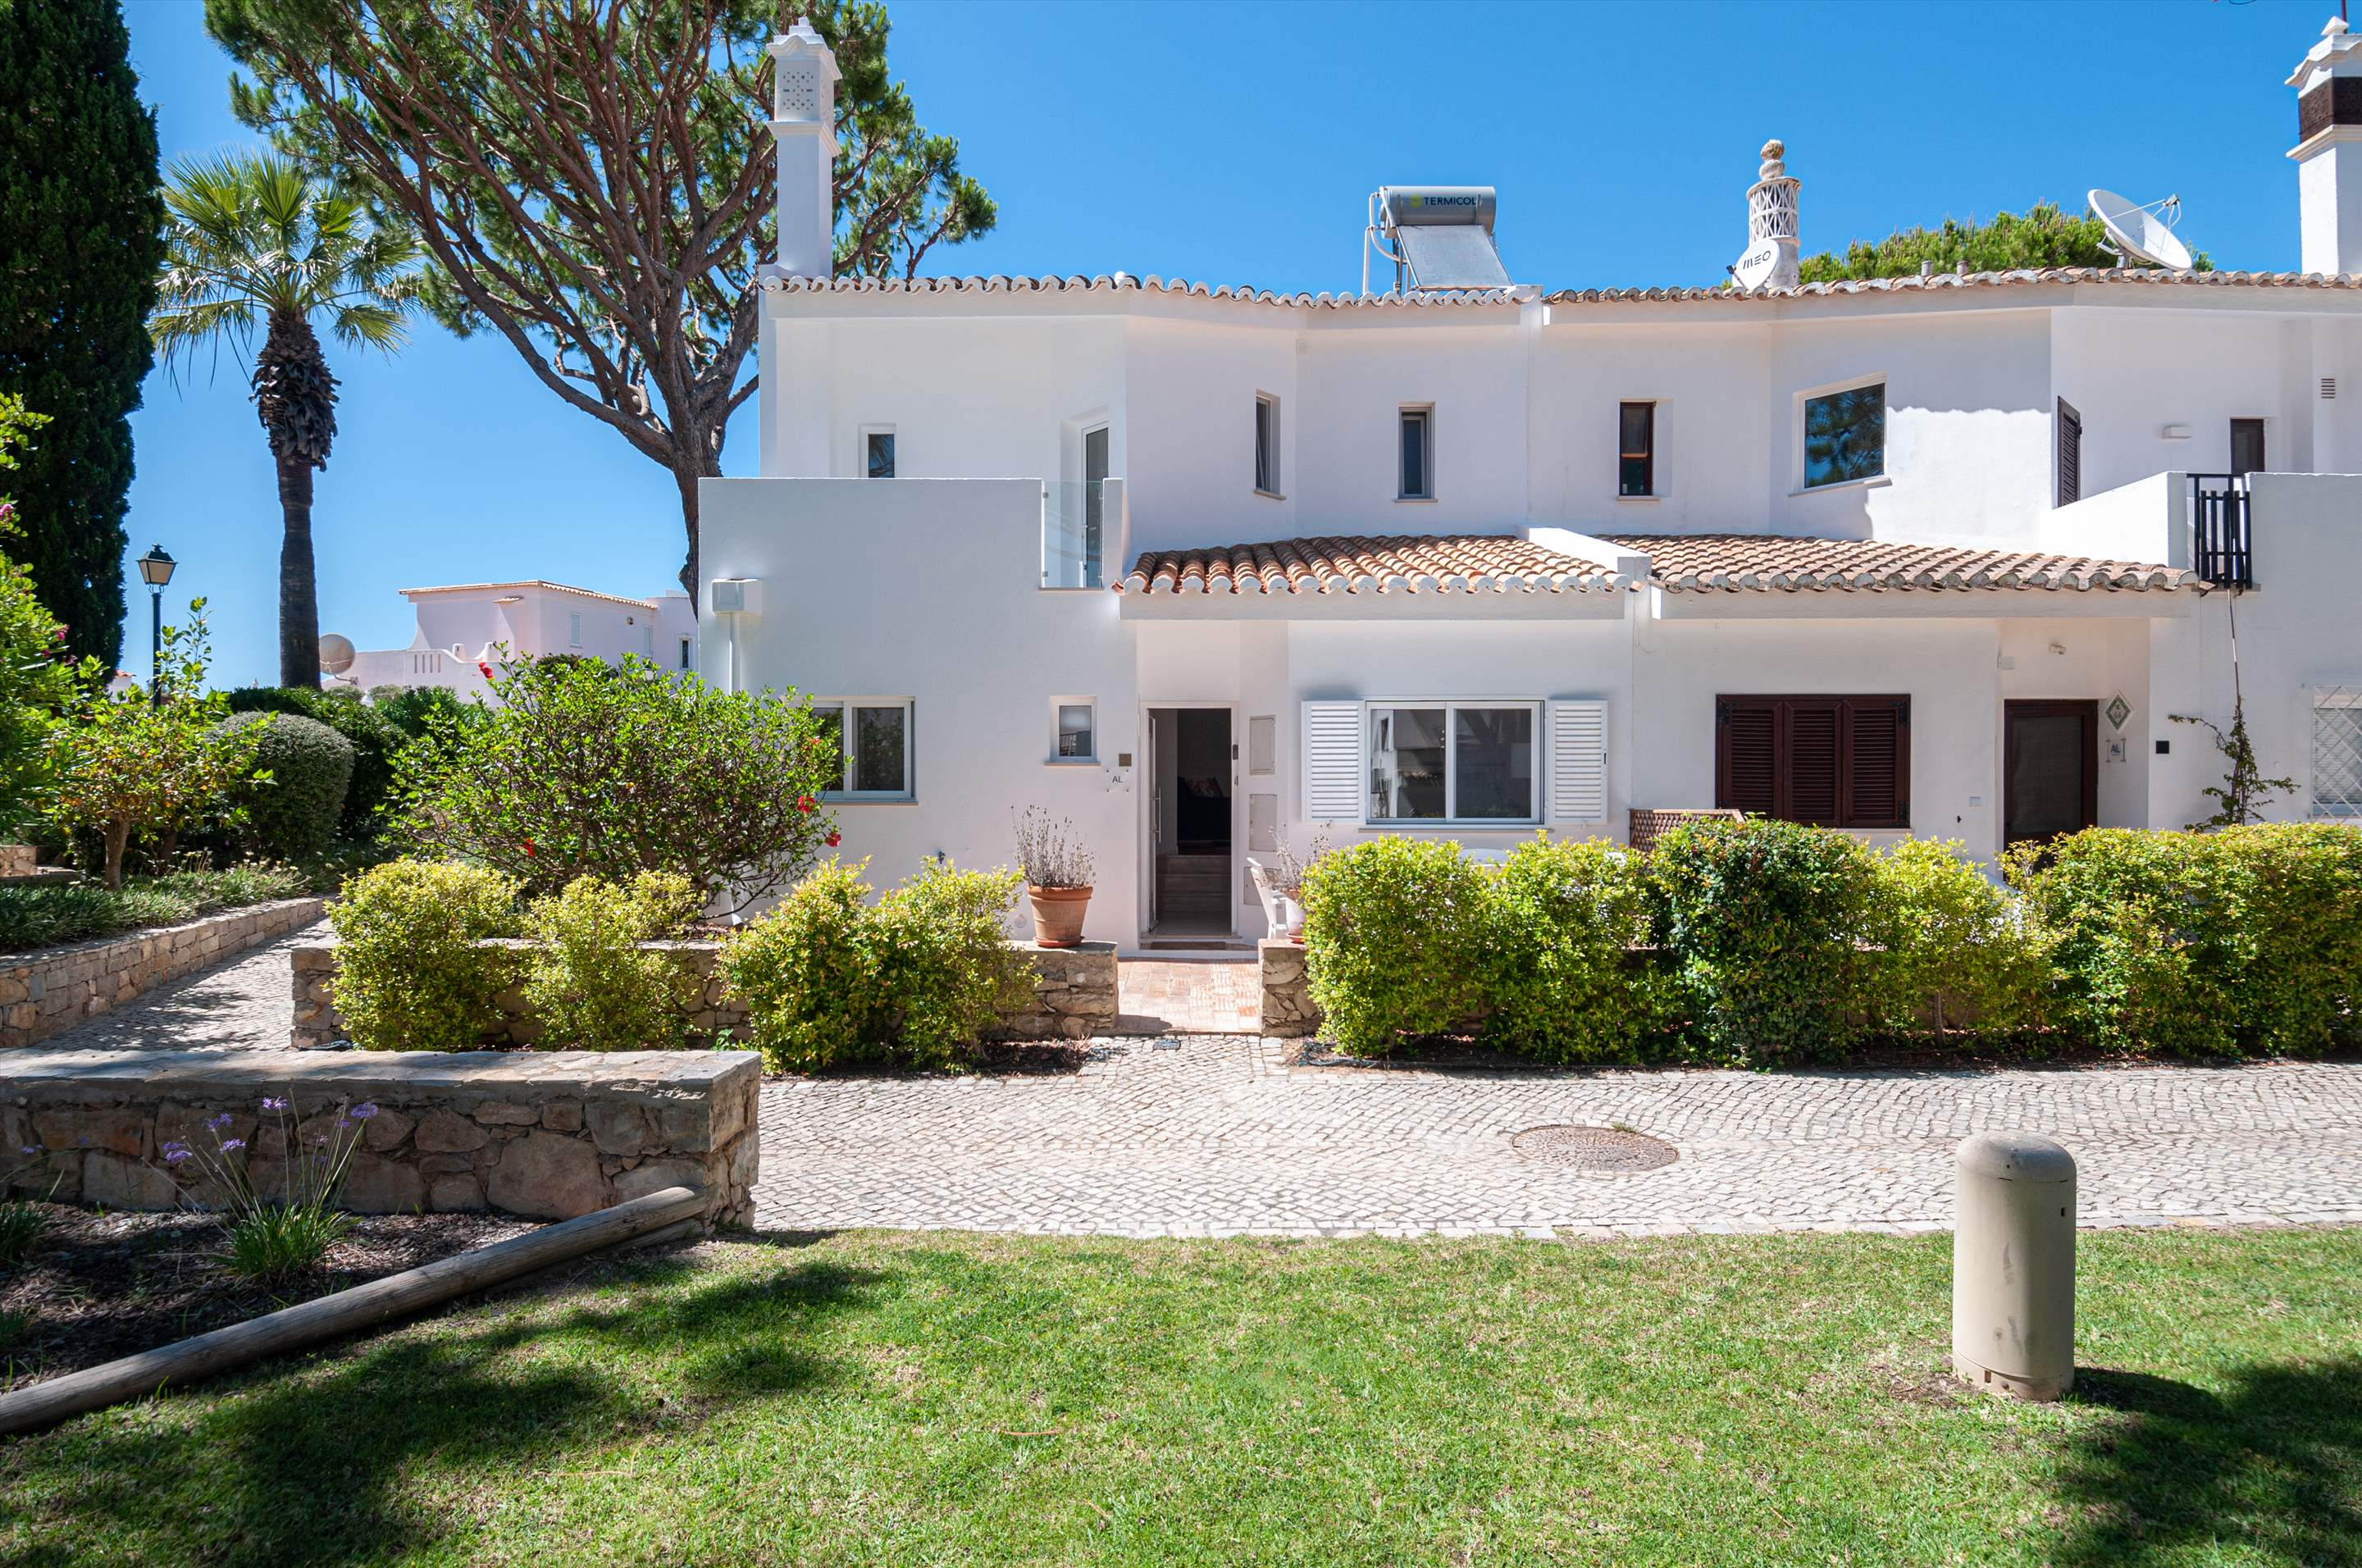 Villa Carmo, 3 bedroom villa in Vale do Lobo, Algarve